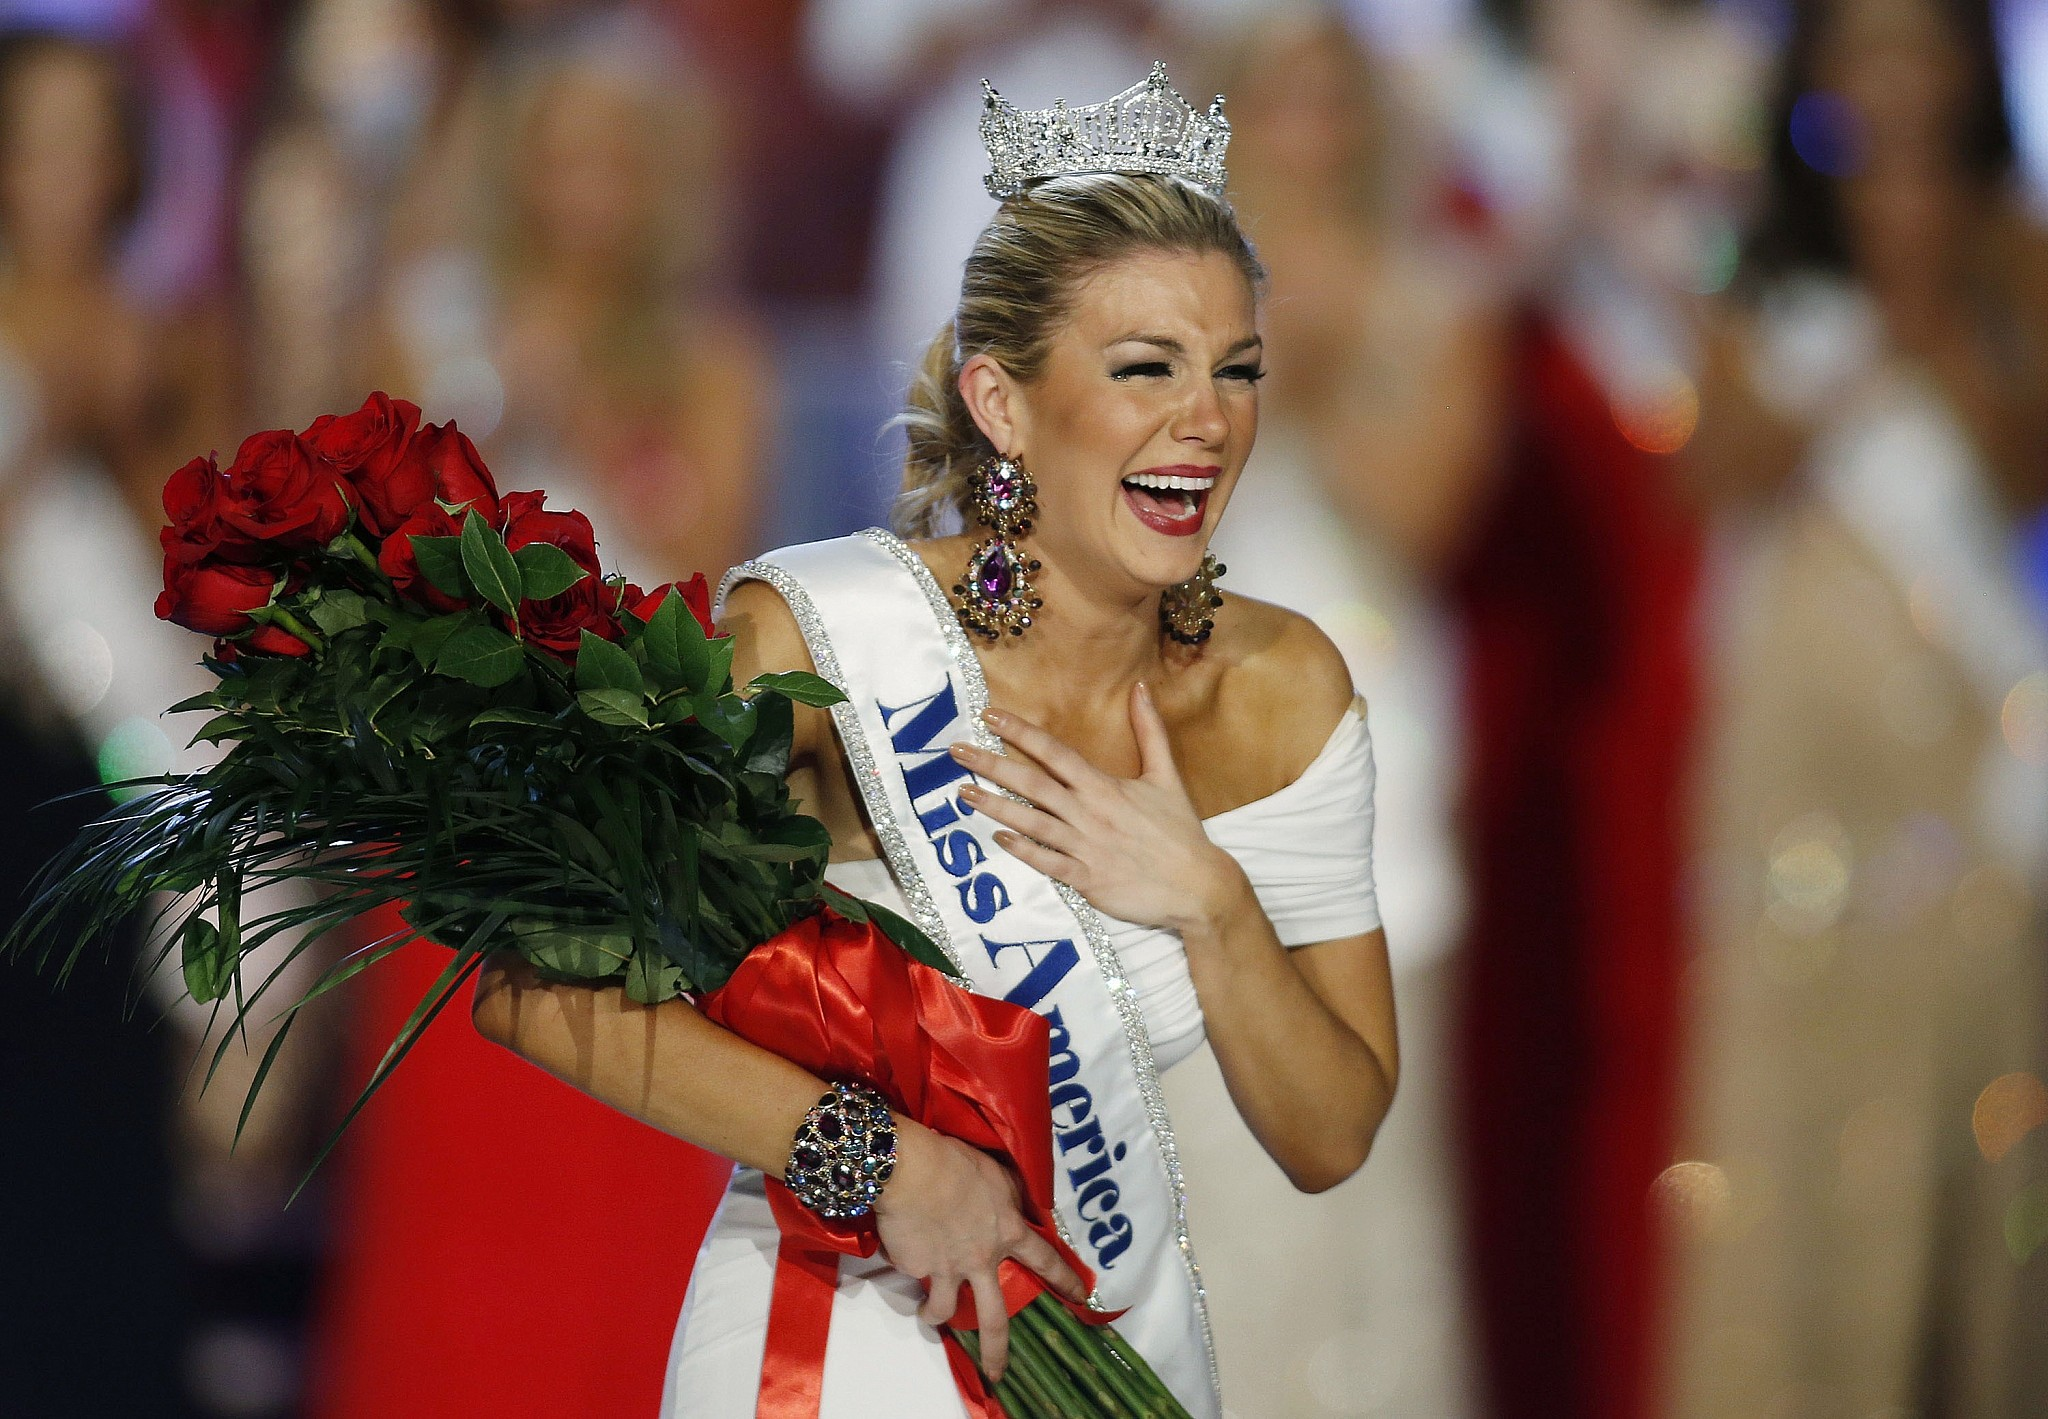 Top leadership of Miss America pageant resigns over email scandal